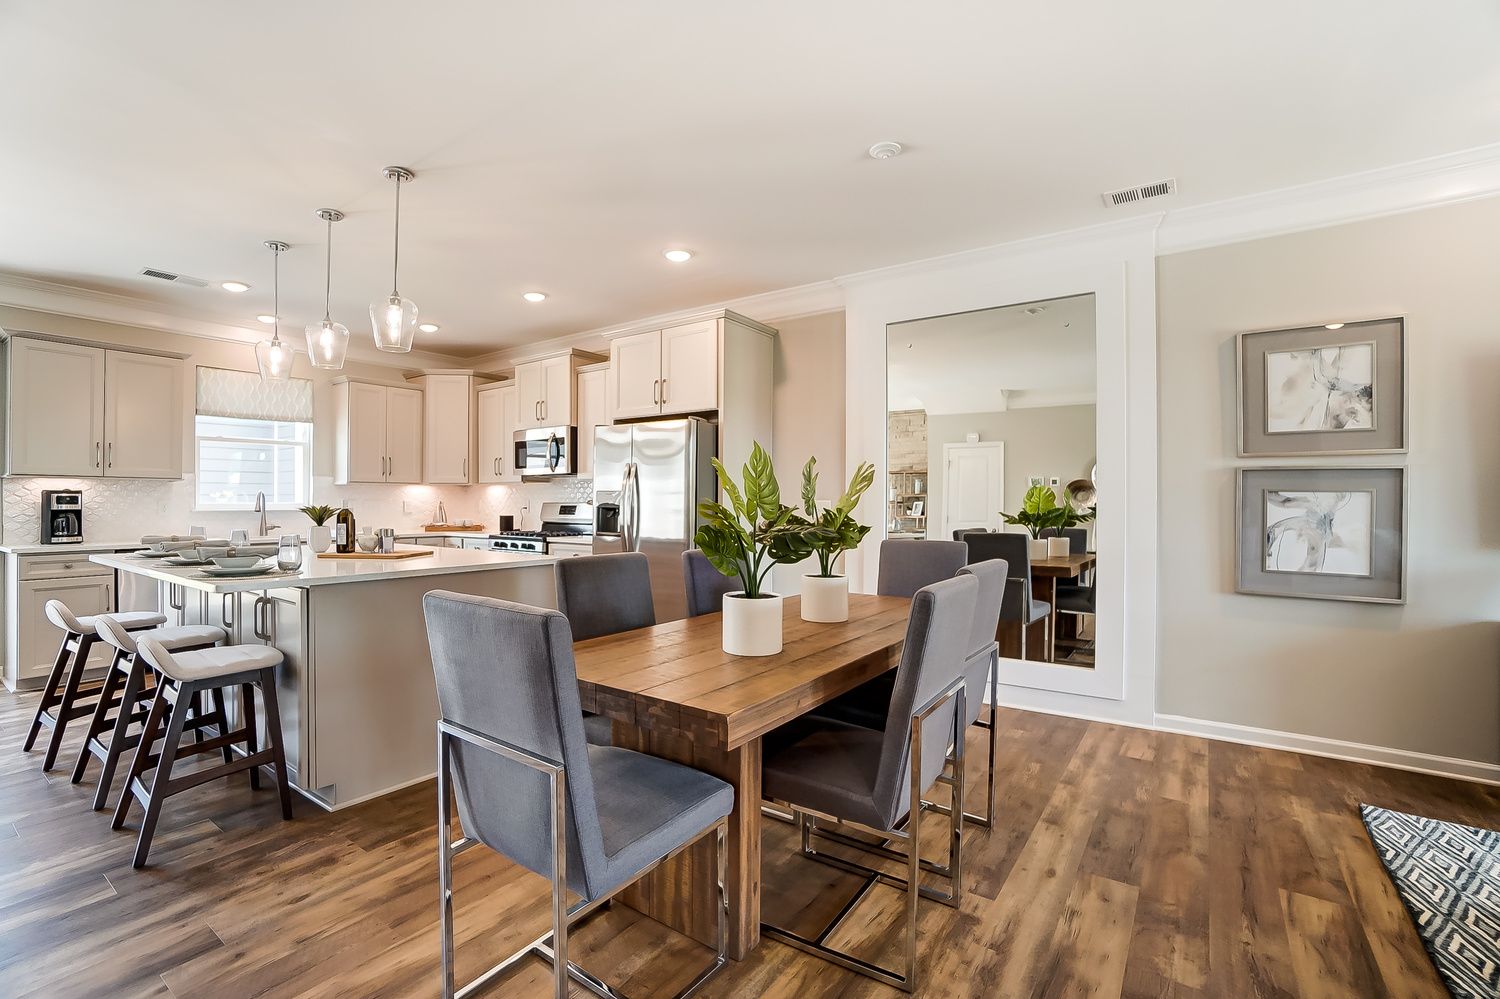 Kensington Townhome Kitchen and Dining Area